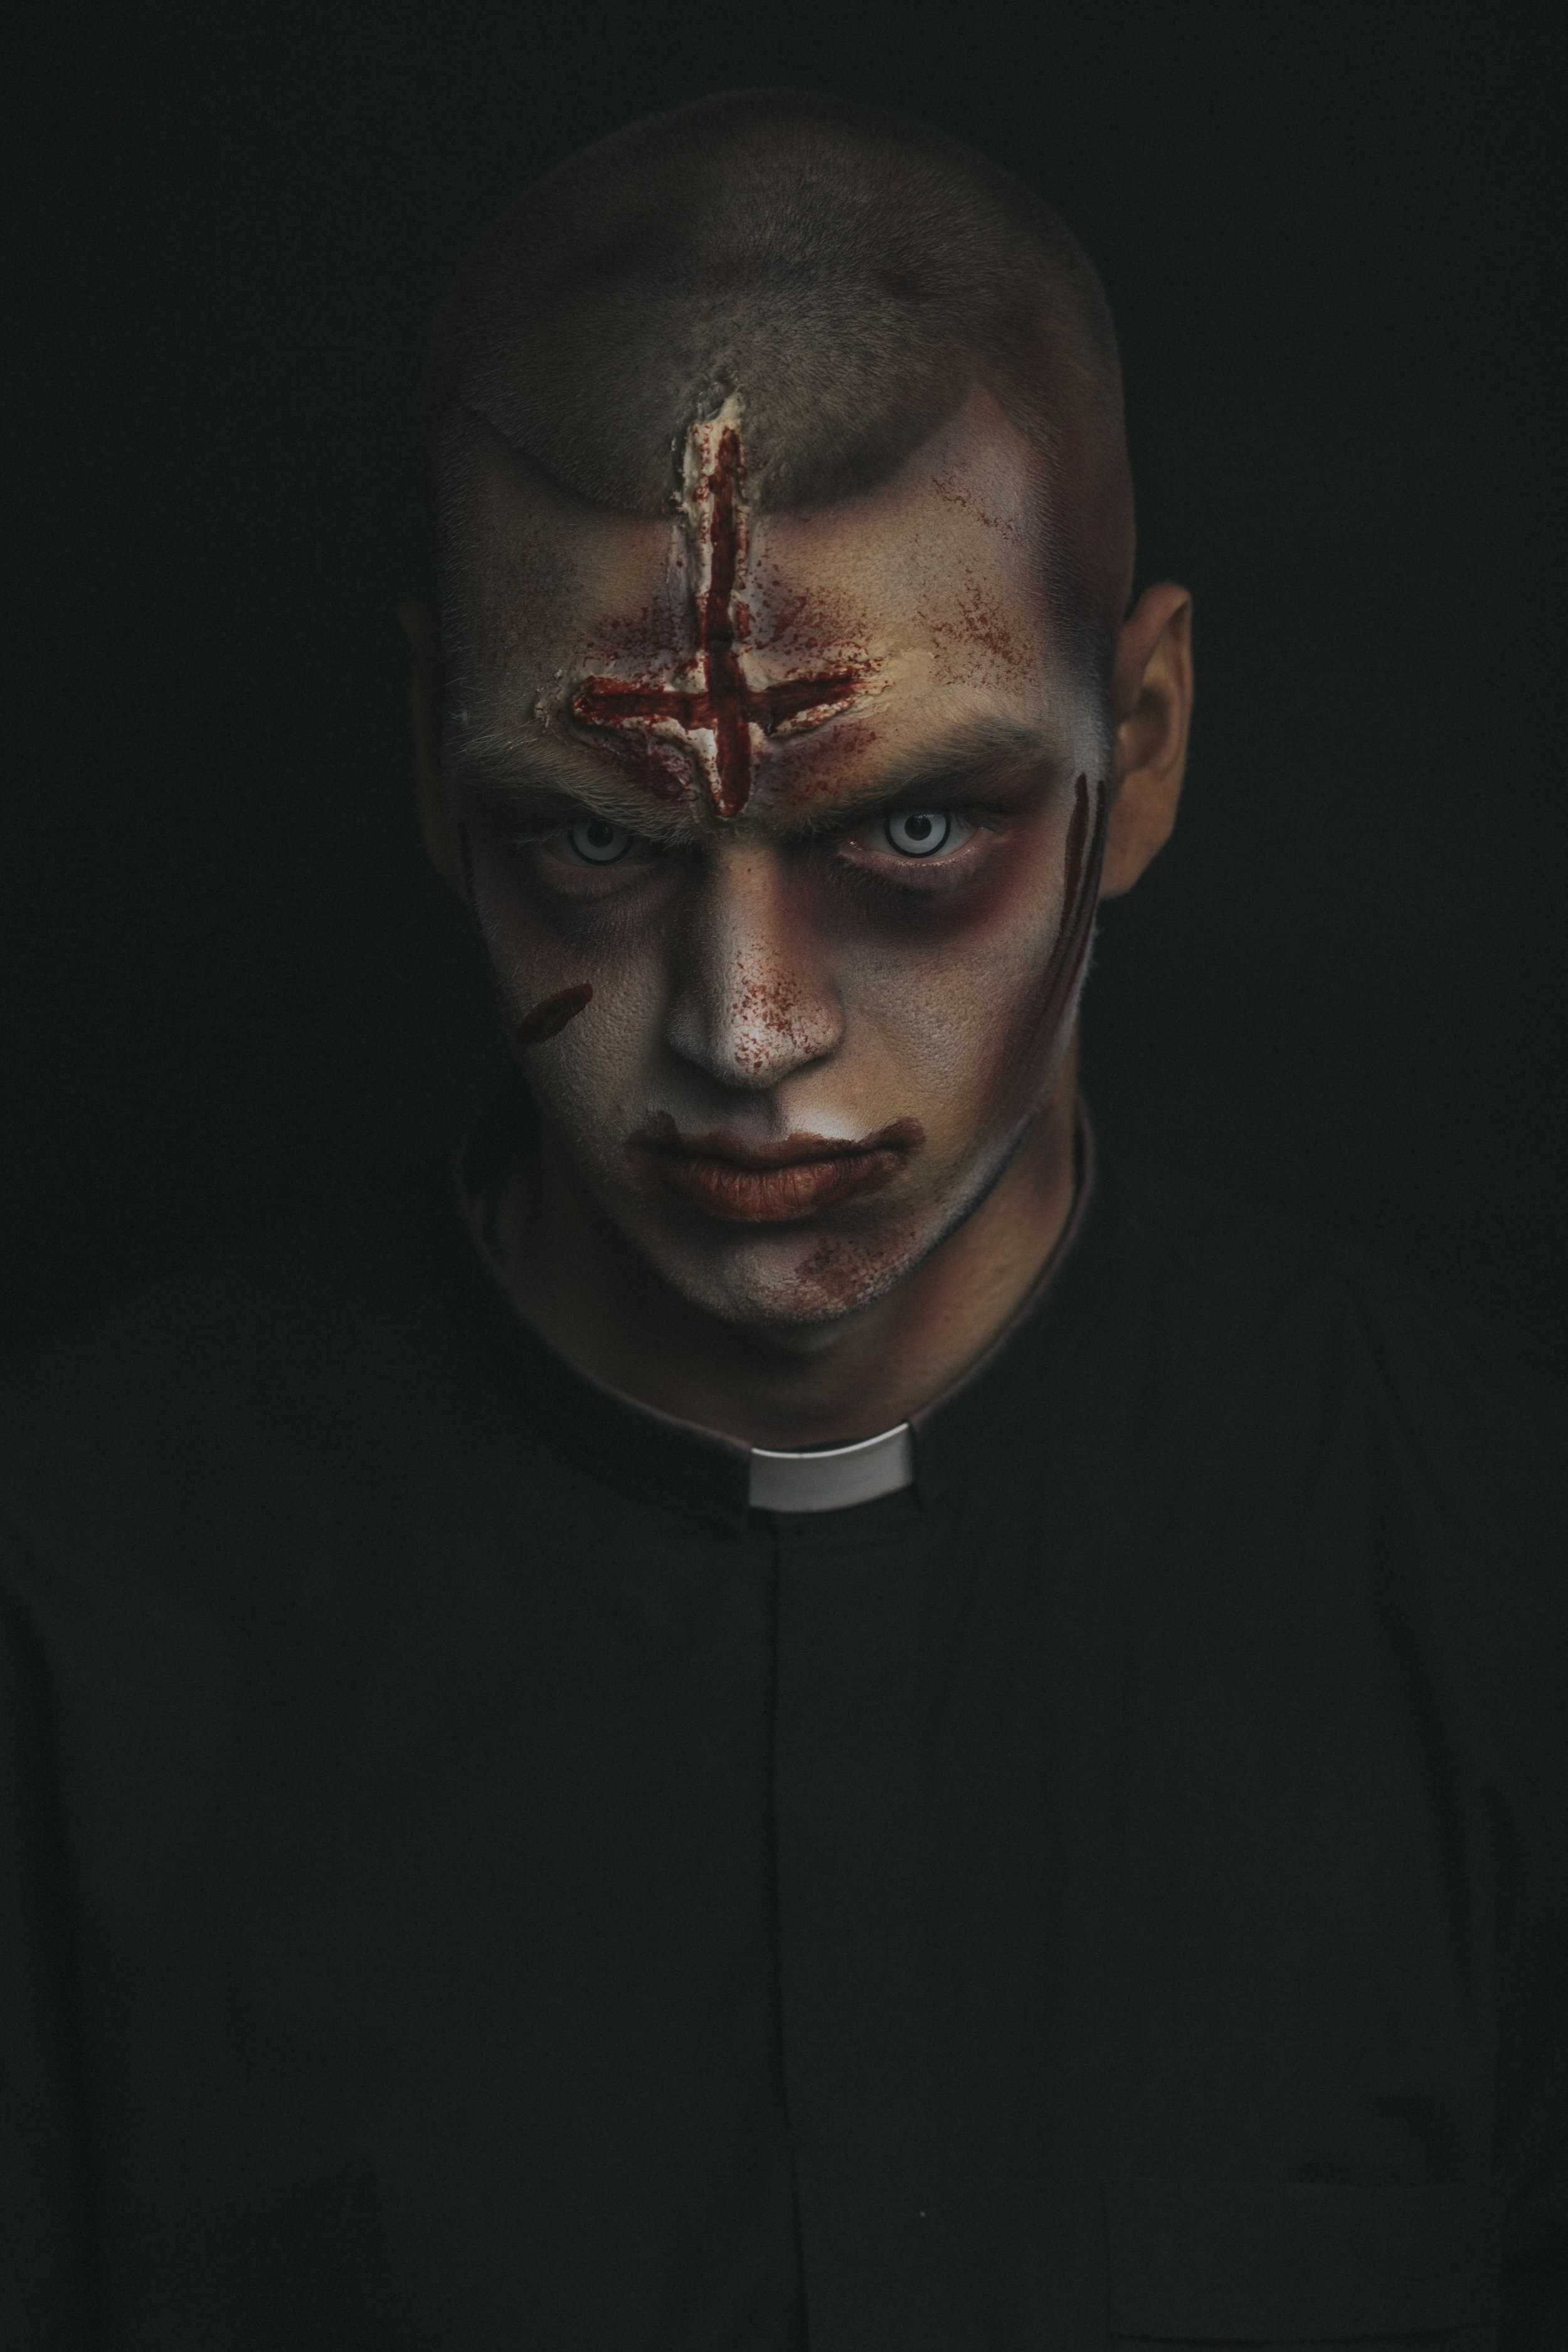 when I started at the Devil's Attic back in 2013 I wan't even in the makeup room. I was a midseason replacement for the priest character. With that said it's always been near and dear to me. when i started in the makeup room in 2014 not only was I not good at airbrush but I hated using it. With that said doing airbrush makeup on myself (something I do a lot now) was out of the question. Even last season I was still using grease paint on the priest. This year I upgraded the makeup room to all European Body Art alcohol based products and upgraded all of the makeups as well. I am very happy with how all of our monsters look and now our priest looks just as possessed as our Regan.